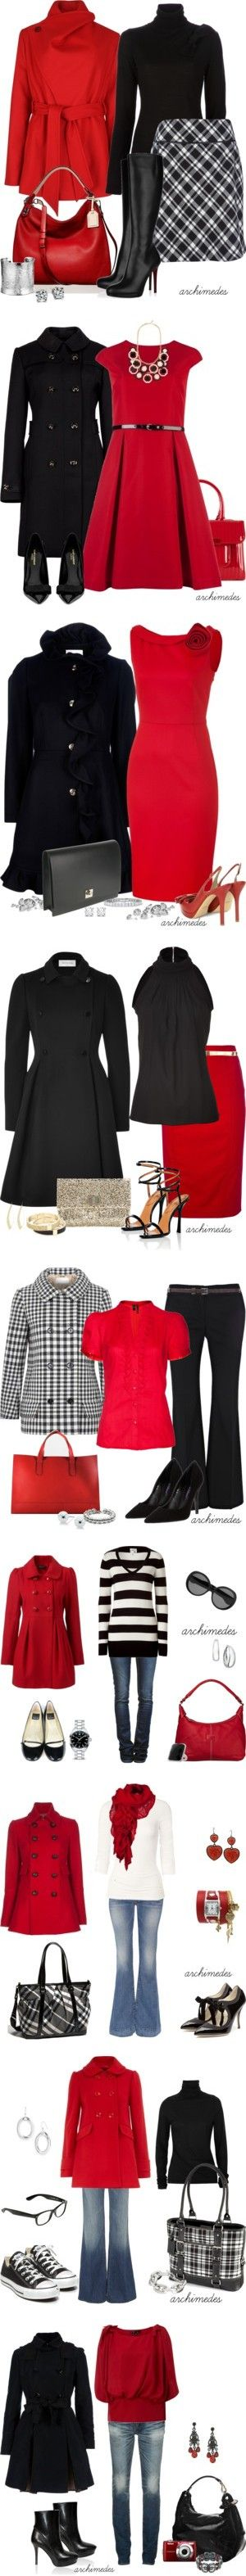 """Red and Black"" by archimedes16 on Polyvore:"